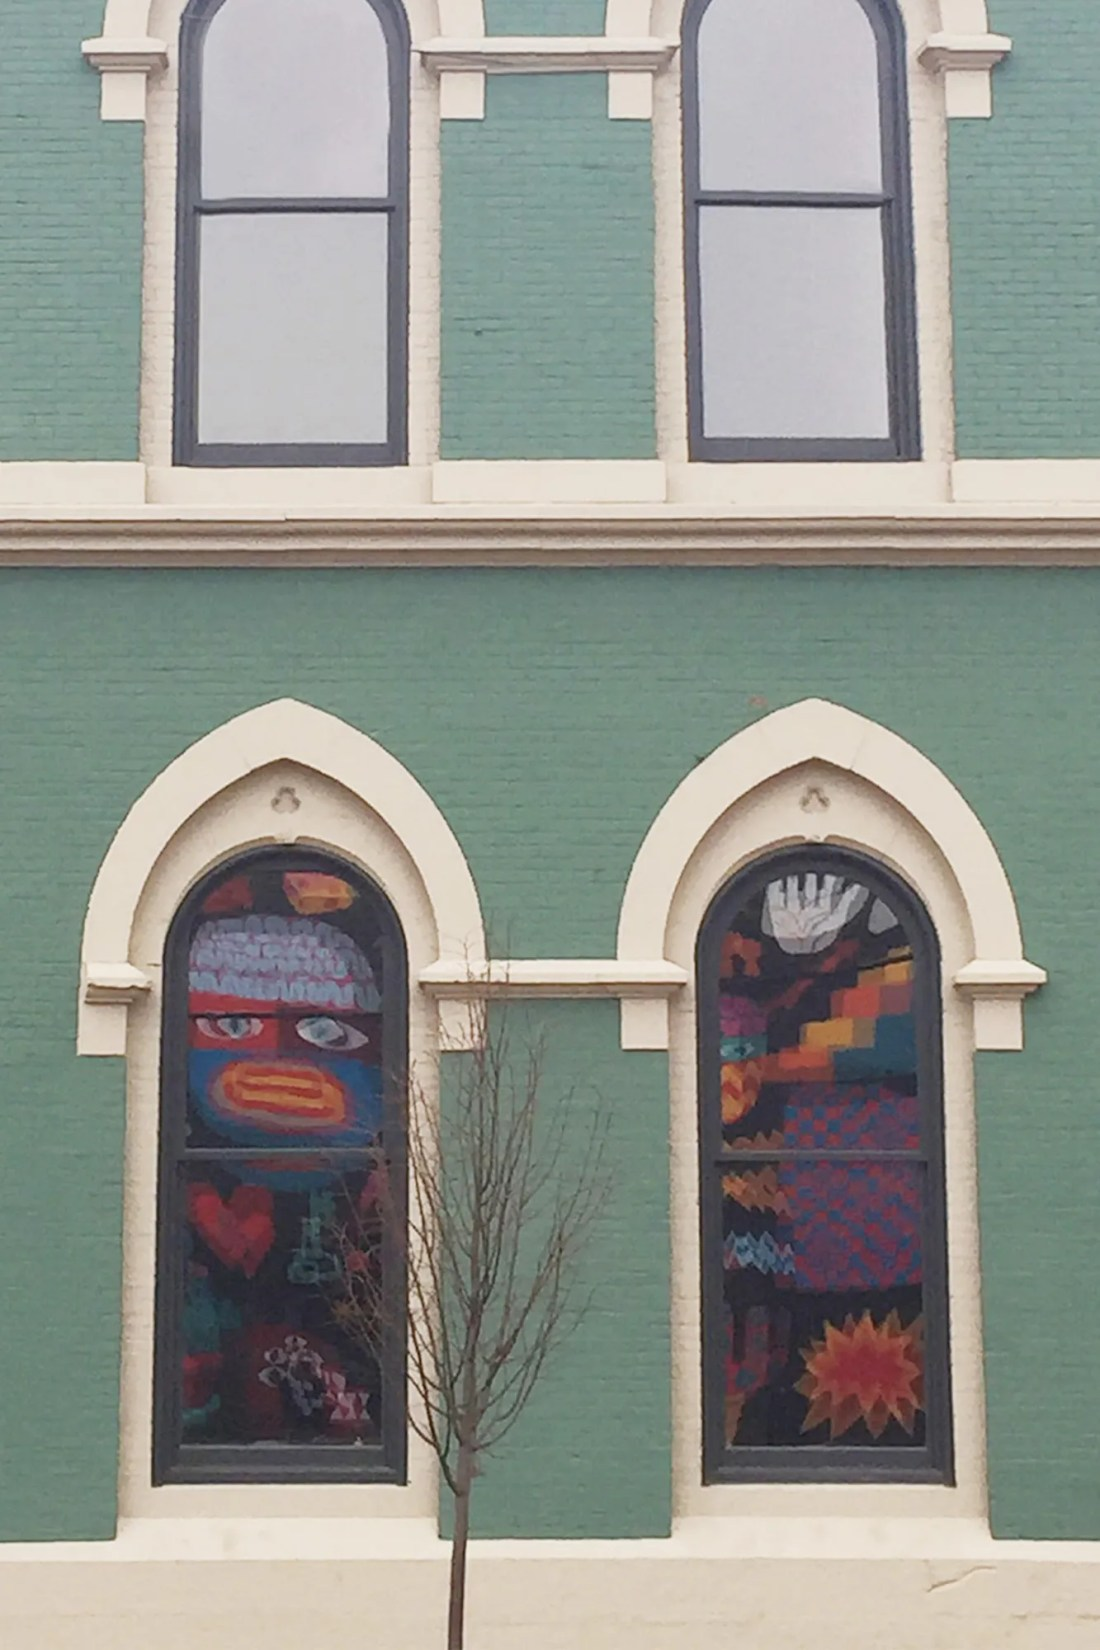 Building with mural reflecting in windows